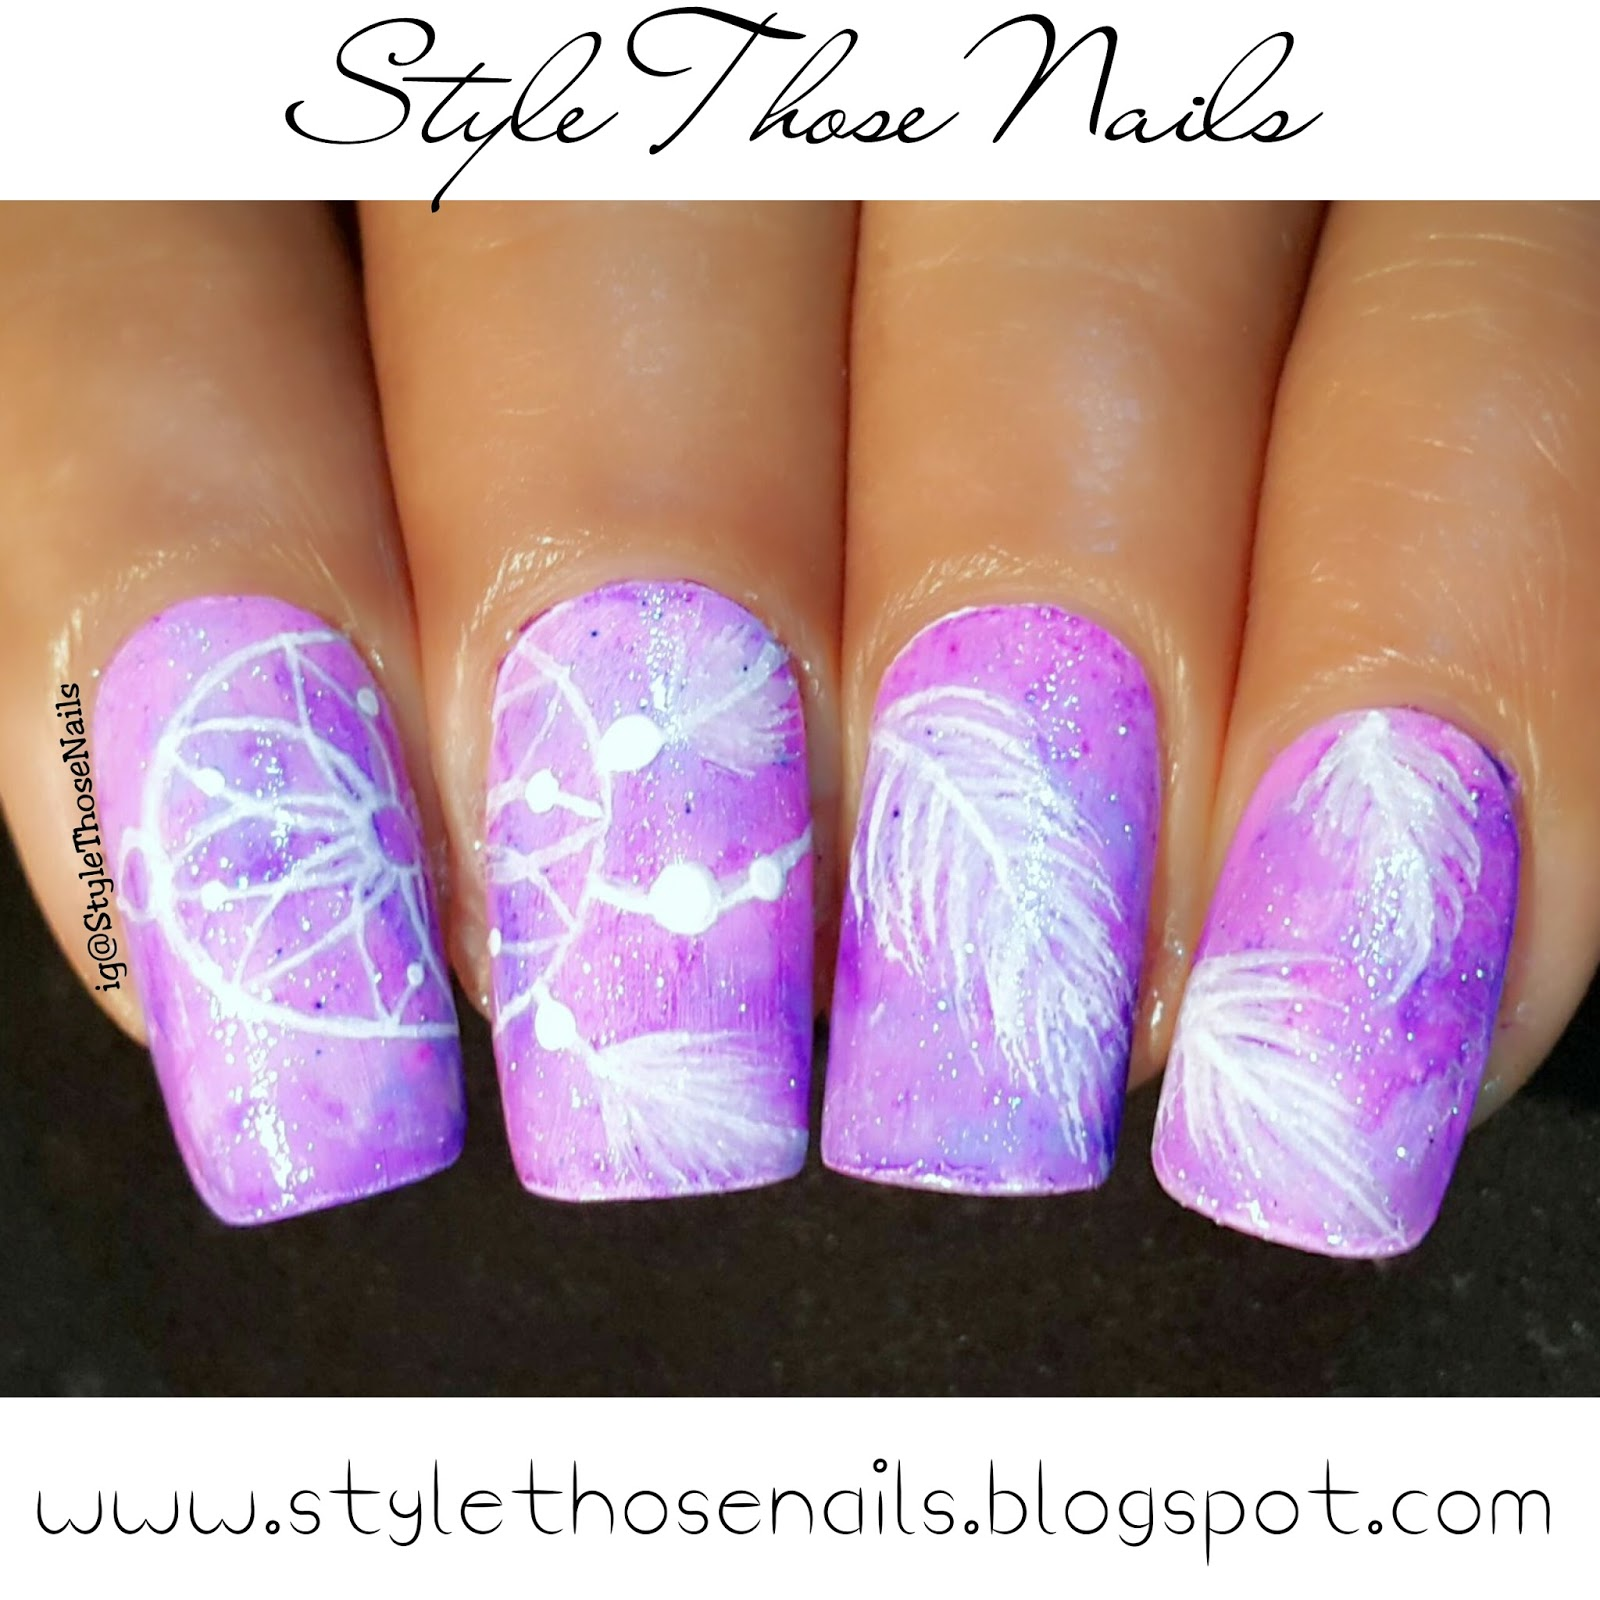 Style Those Nails Dream Catcher Nails On Water Colour Base Mani